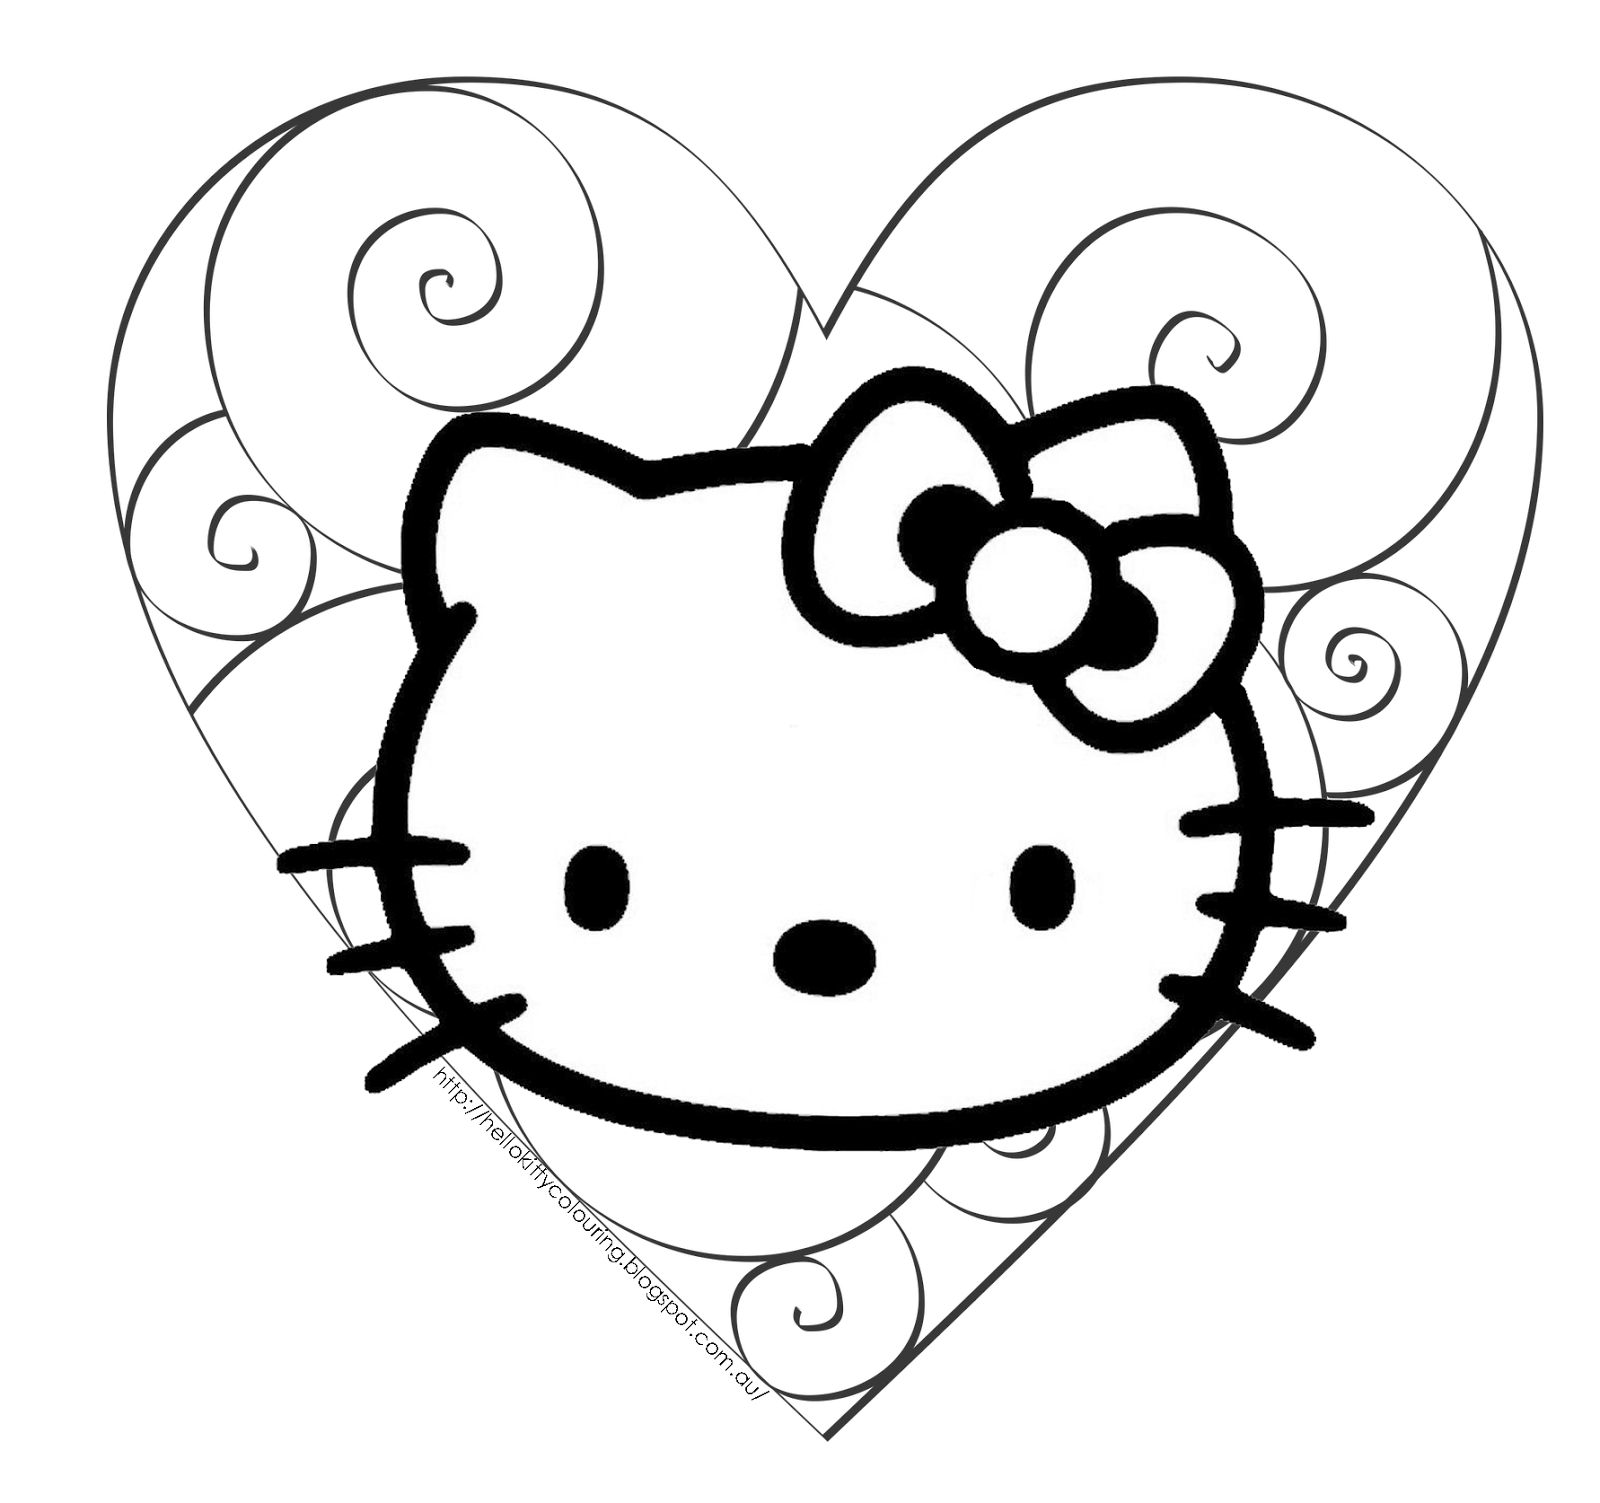 Coloring Pages DLTK's Crafts for Kids - printable valentine coloring pages